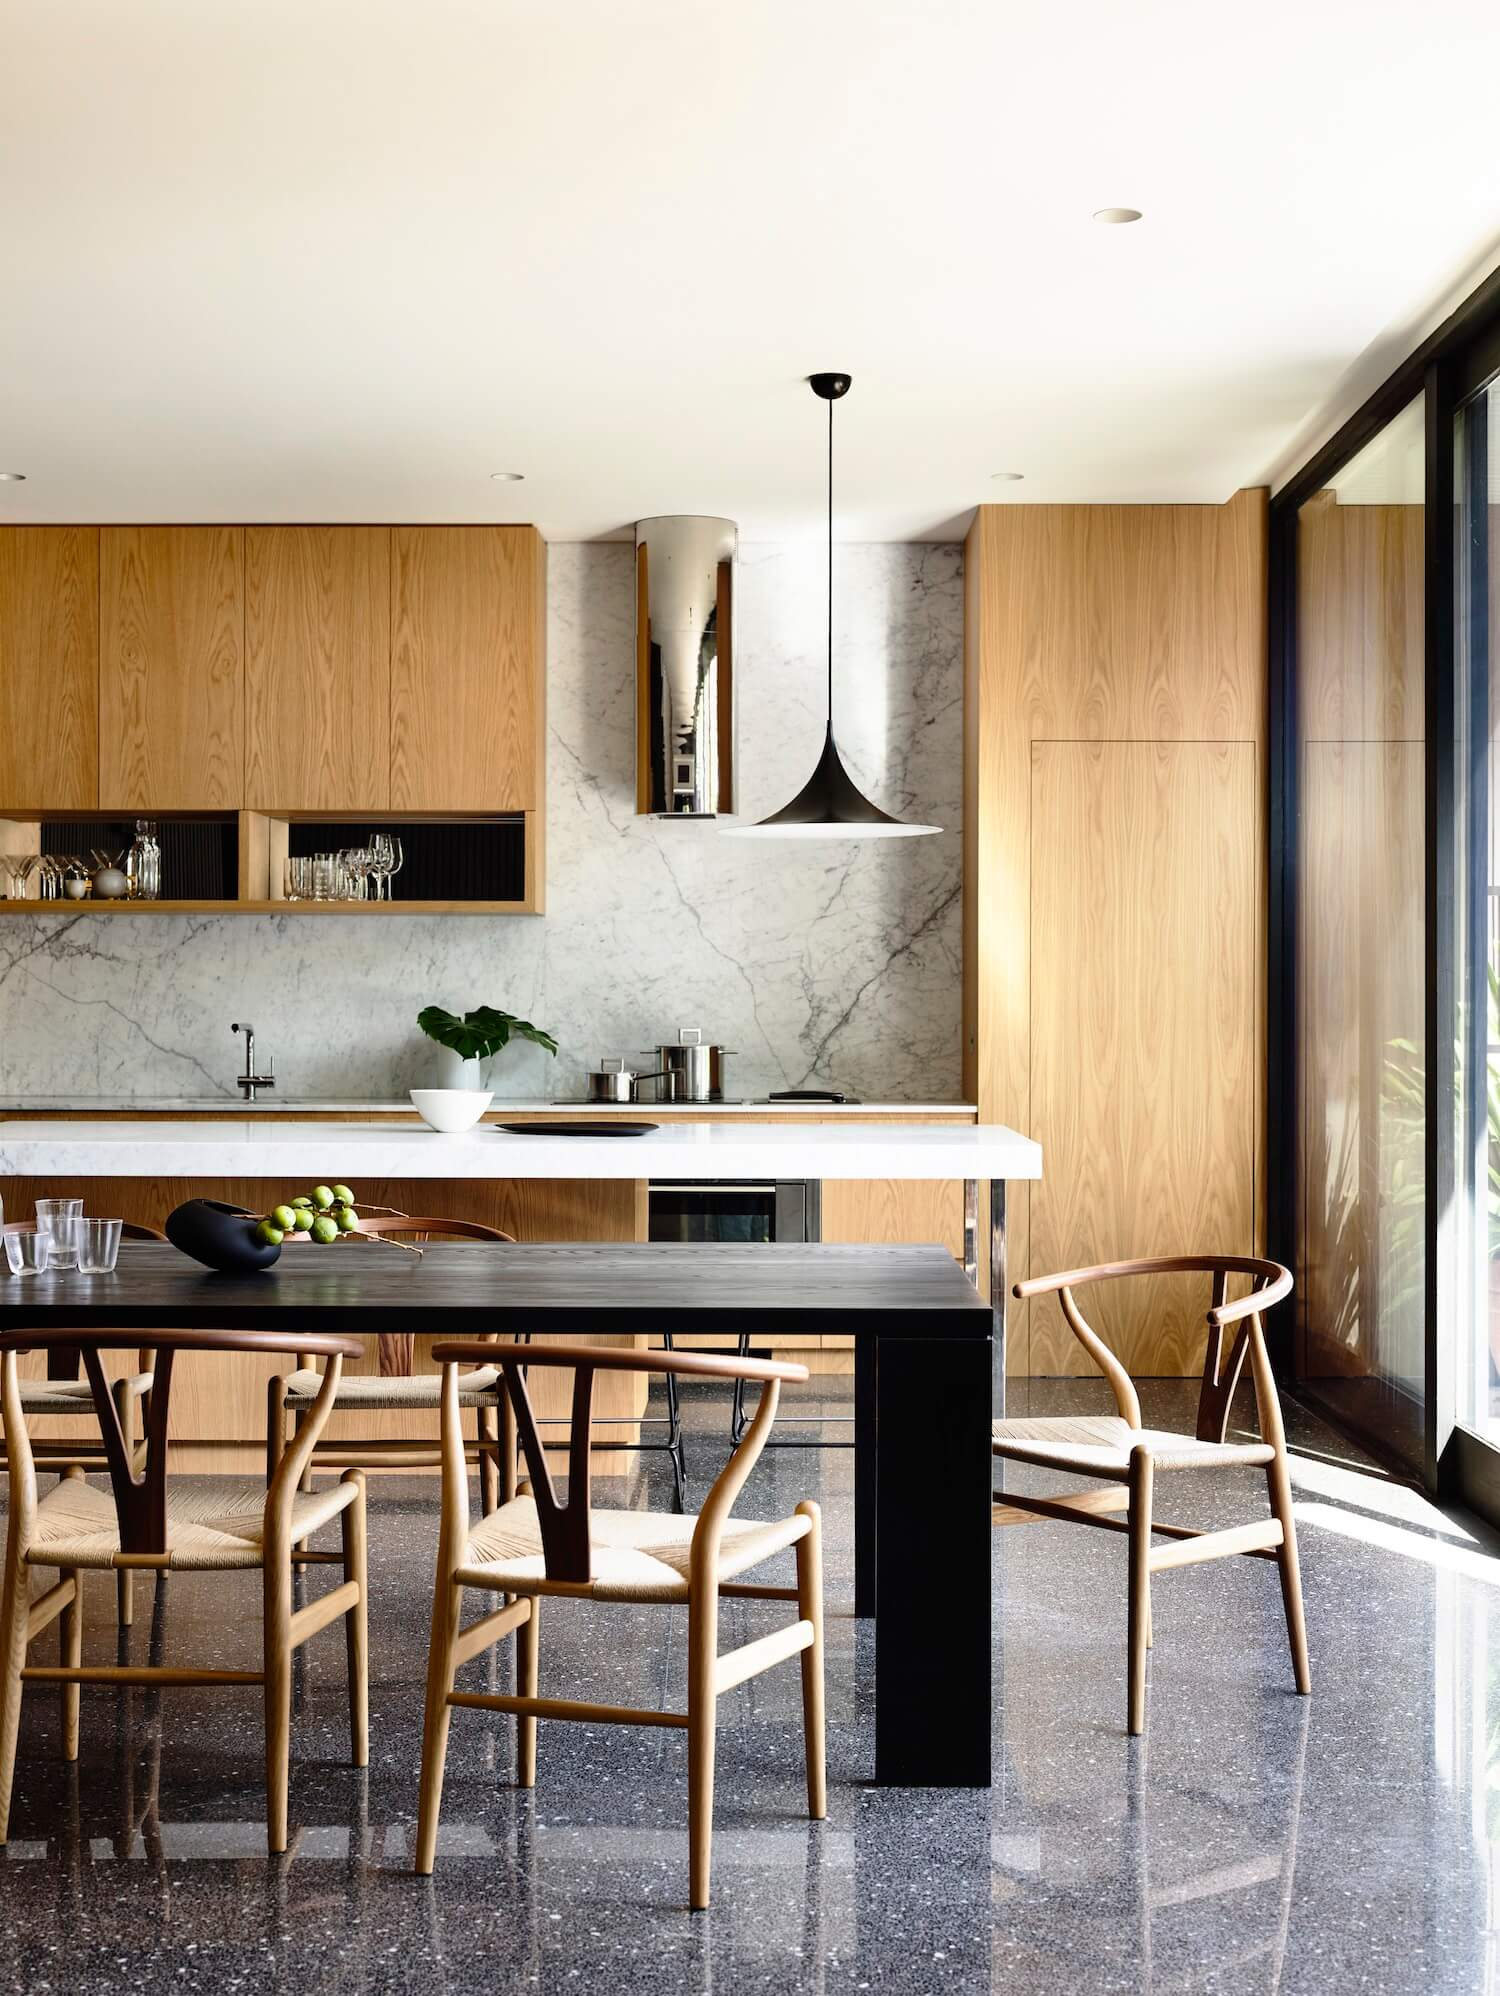 est living australian interiors washington avenue townhouse pandolfini architects 4